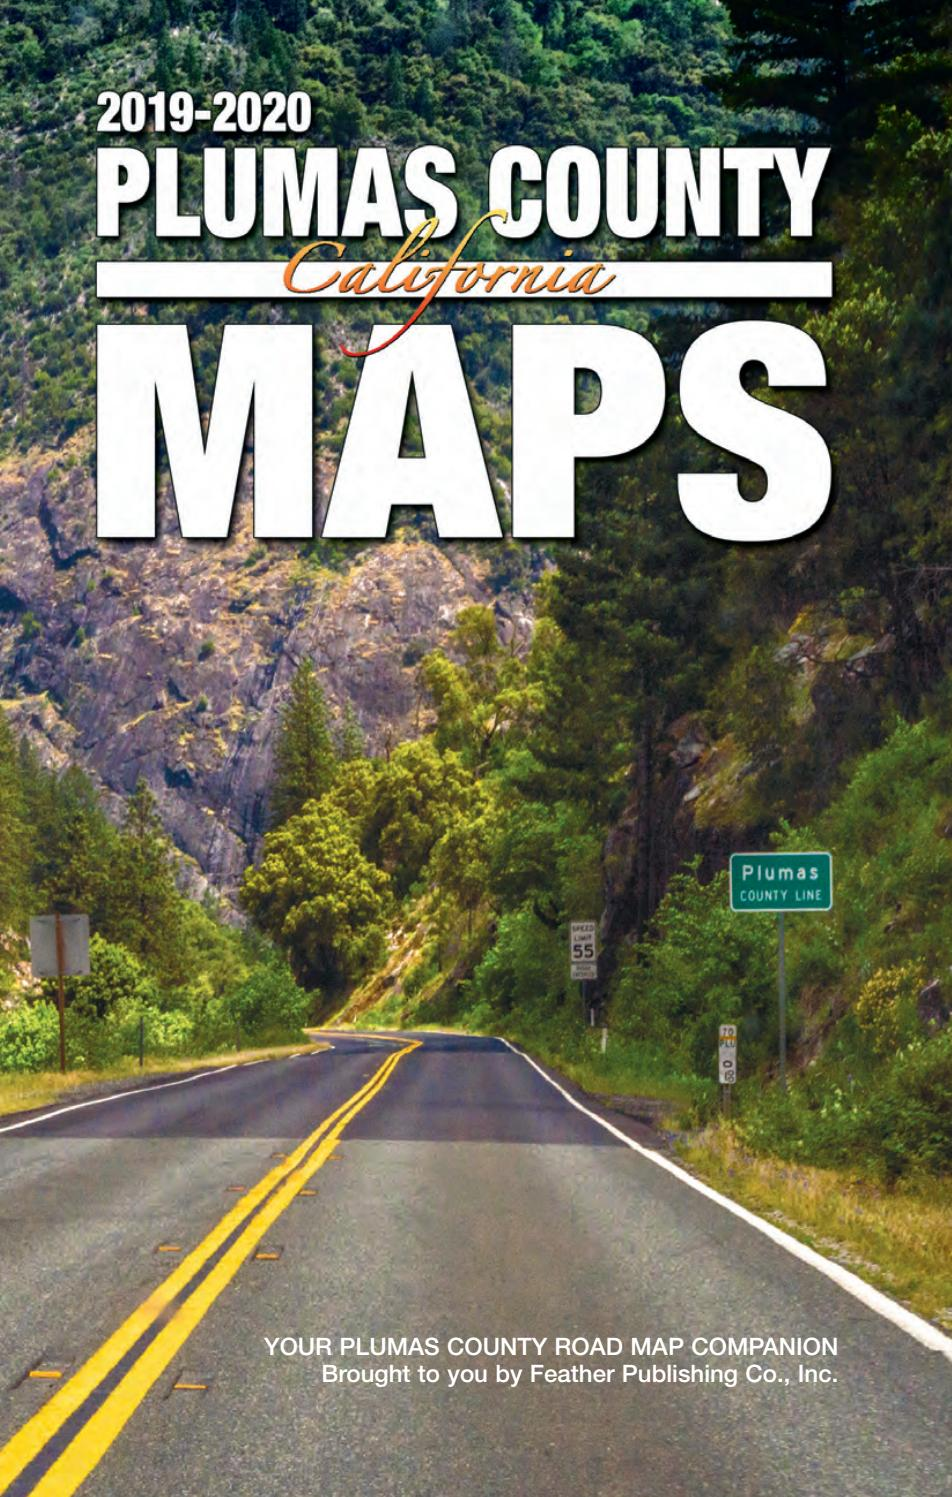 Plumas County Book of Maps 2019 by Feather Publishing - issuu on